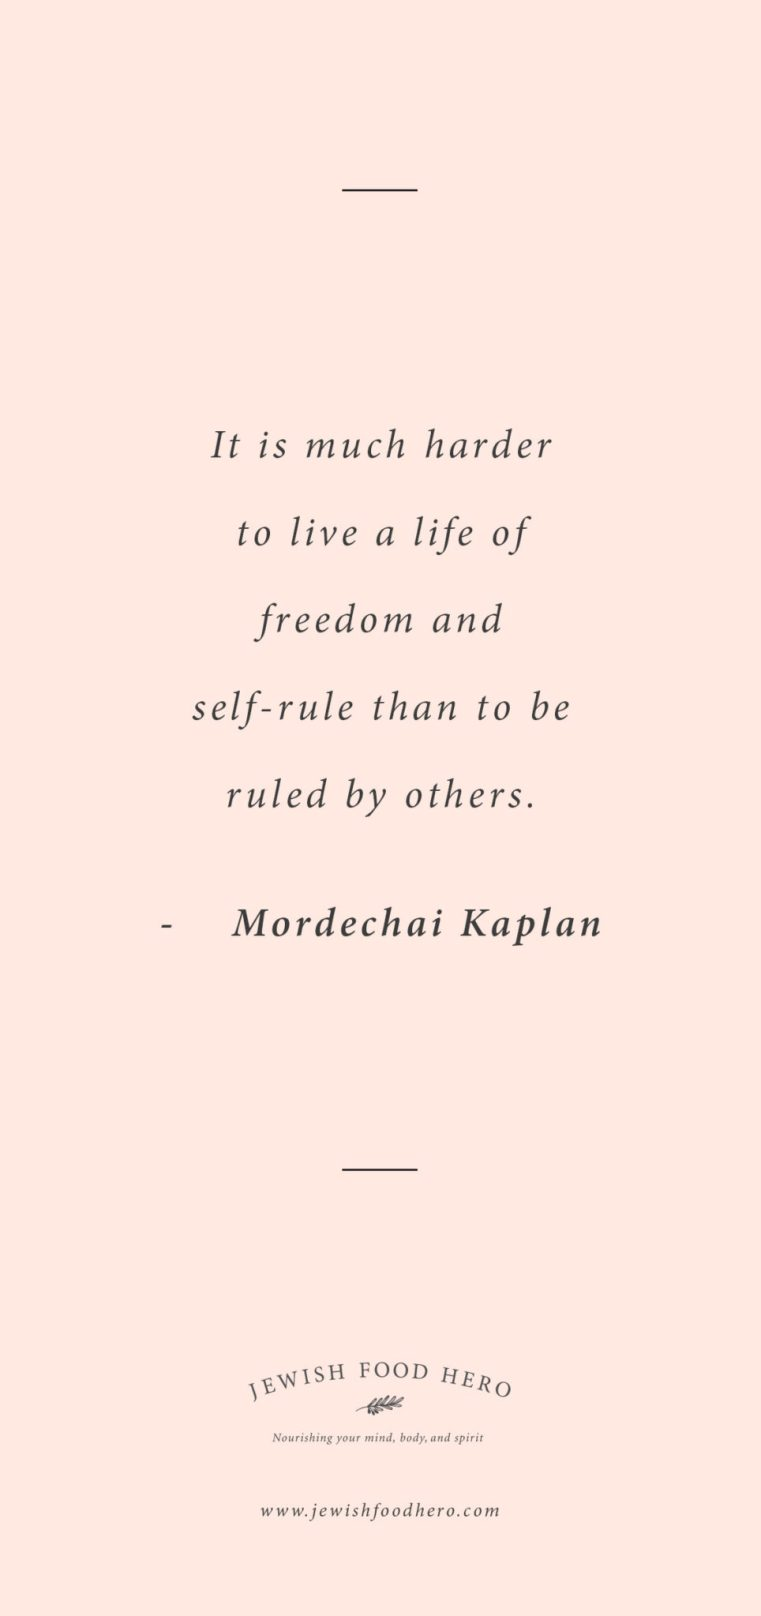 Mordechai Kaplan quotes, quotes on life and freedom, jewish quotes